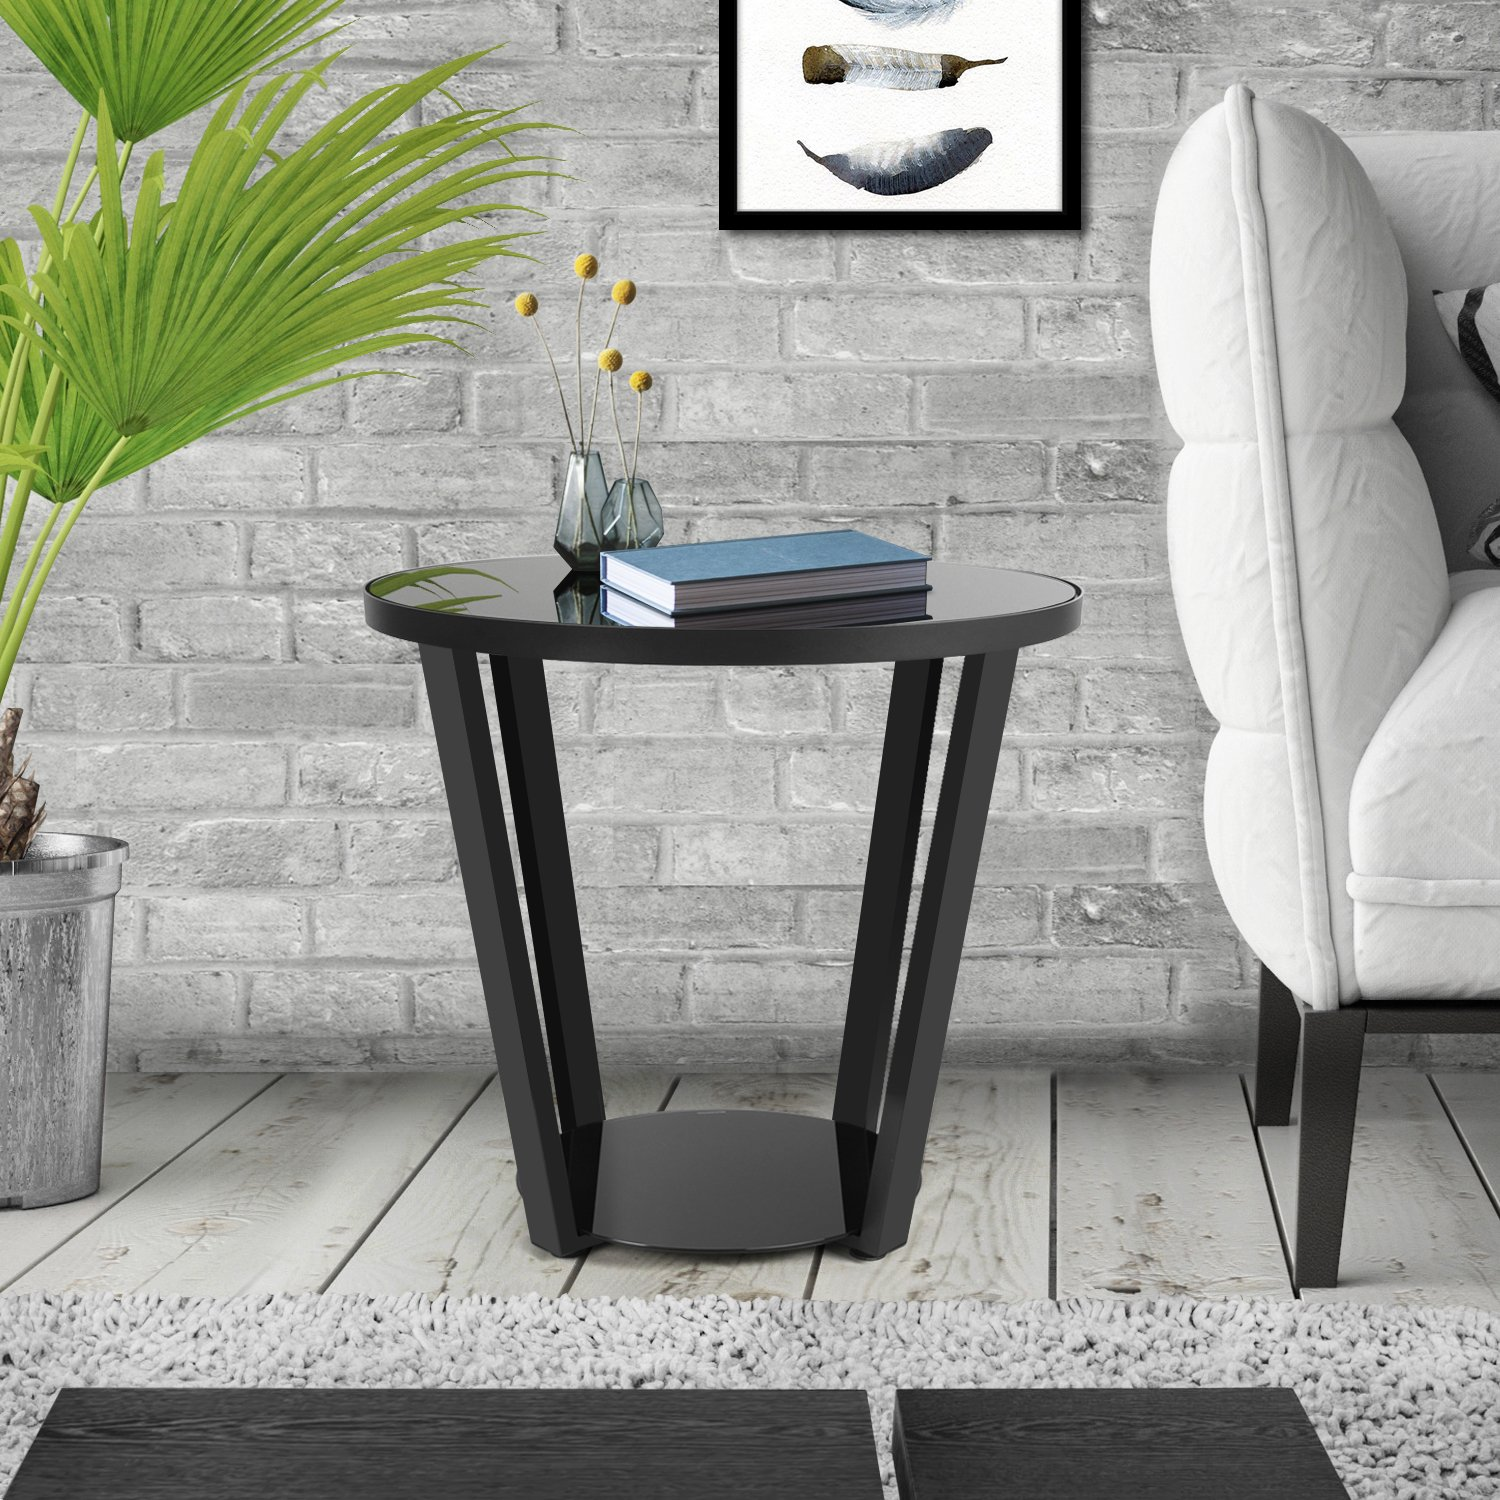 Lifewit Round Nightstand End Table Coffee Snack Sofa Side Table